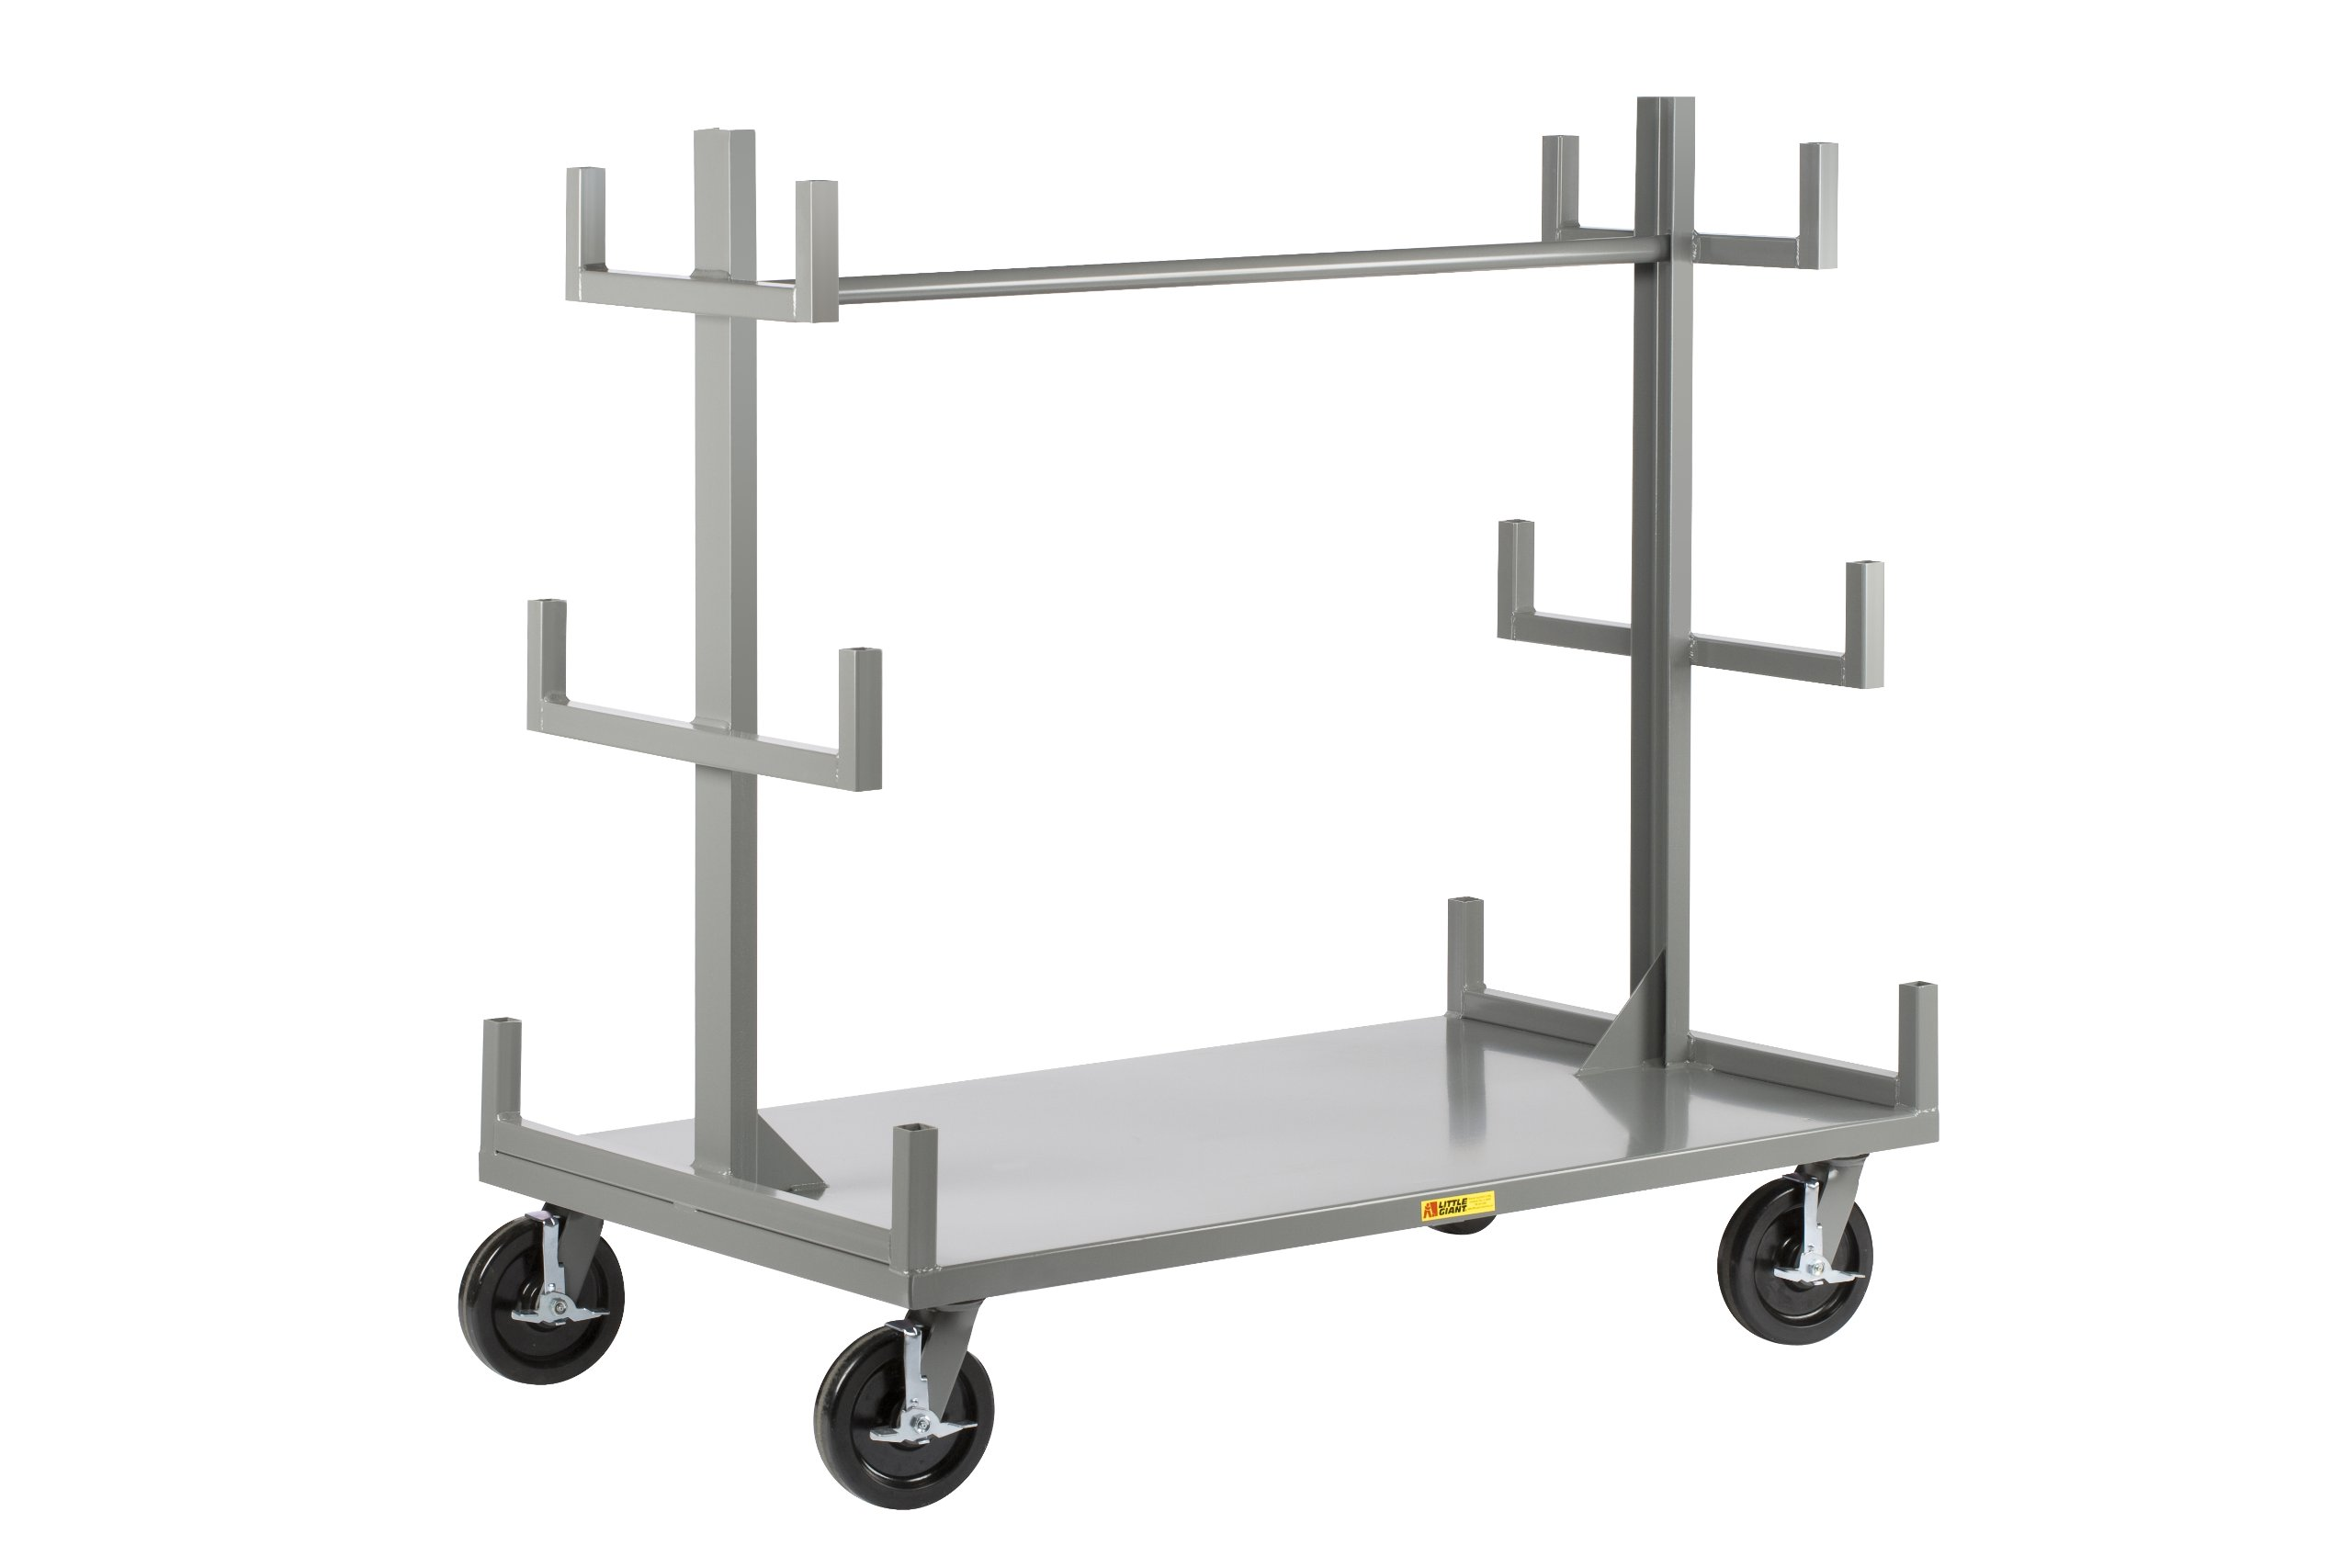 Little Giant BRT-3672-8PHBK Steel Portable Bar and Pipe Truck with 4 Swivel Casters and Wheel Brakes, 3600 lbs Load Capacity, 58'' Height x 36'' Width x 72'' Length